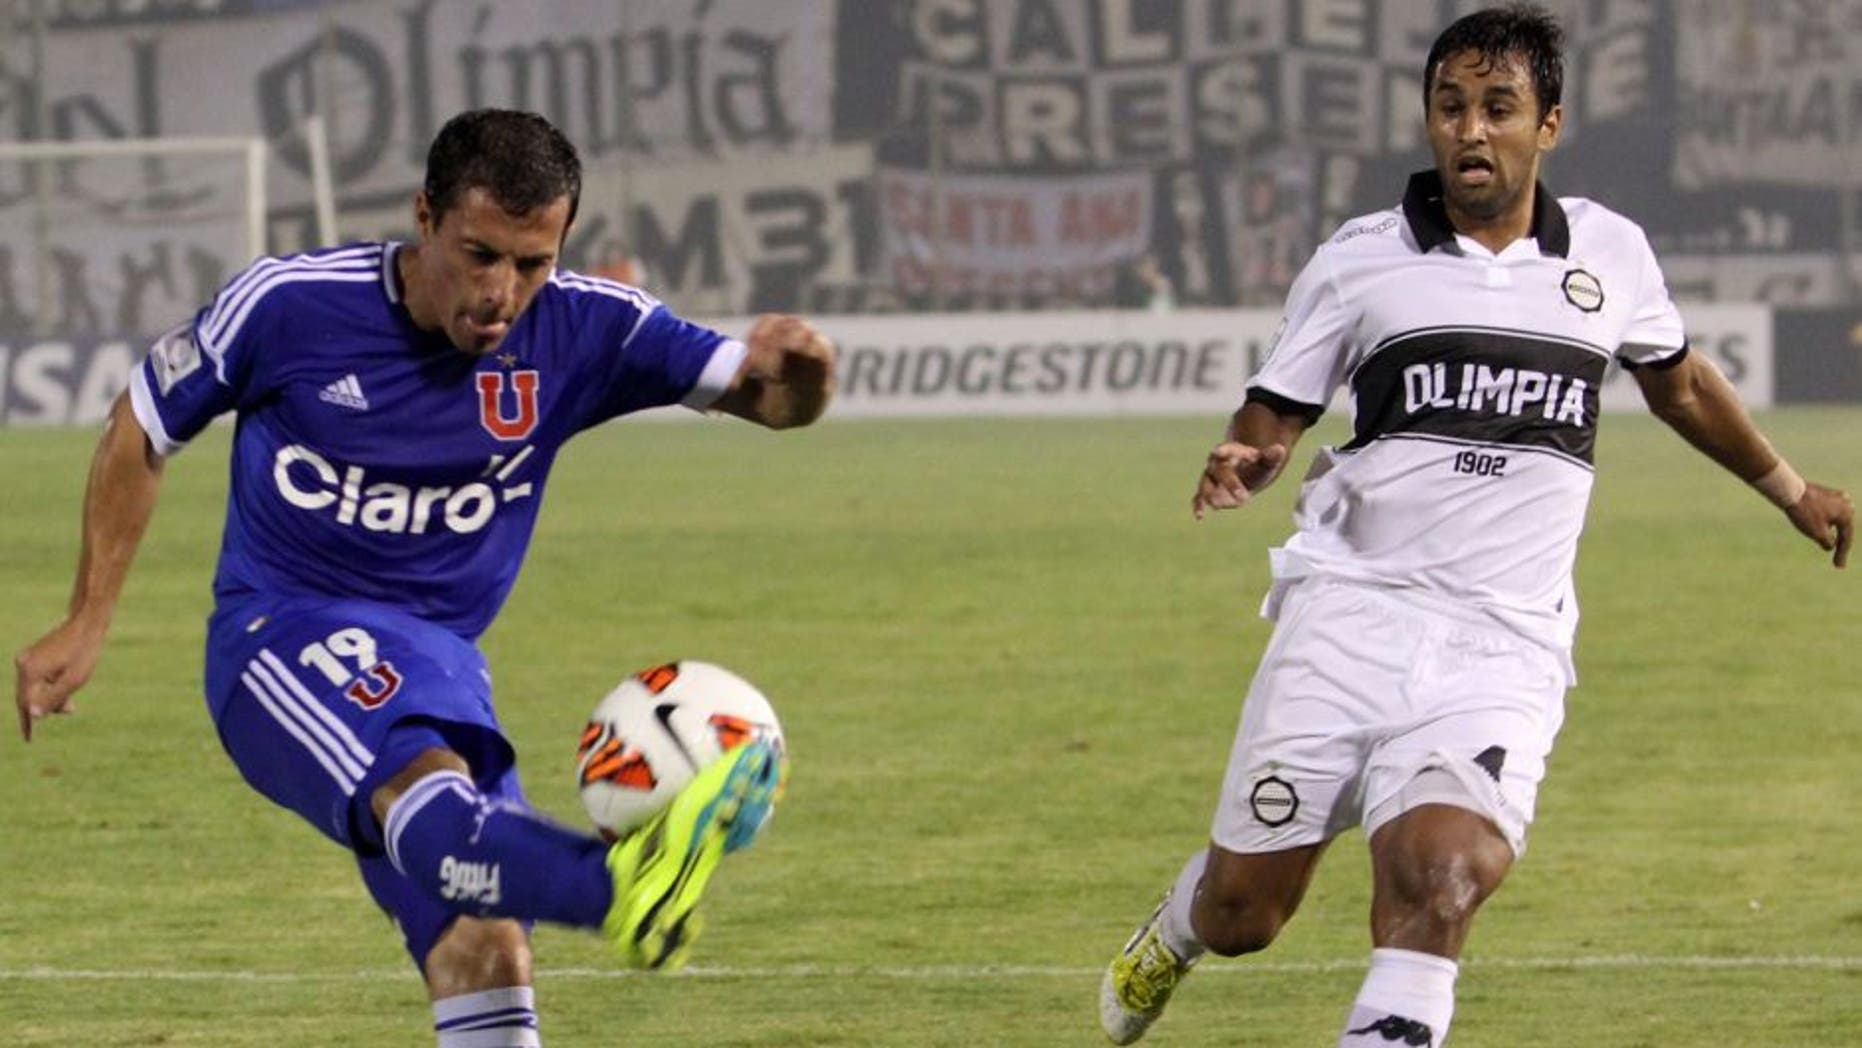 ASUNCION, PARAGUAY - FEBRUARY 19: Sebastian Ubilla of Universidad de Chile and Seabastian Ariosa of Olimpia fight for the ball during a match as part of the Copa Bridgestone Libertadores 2013 at Defensores del Chaco Stadium on February 19, 2013 in Asuncion, Paraguay. (Photo by Luis Vera/LatinContent/Getty Images)